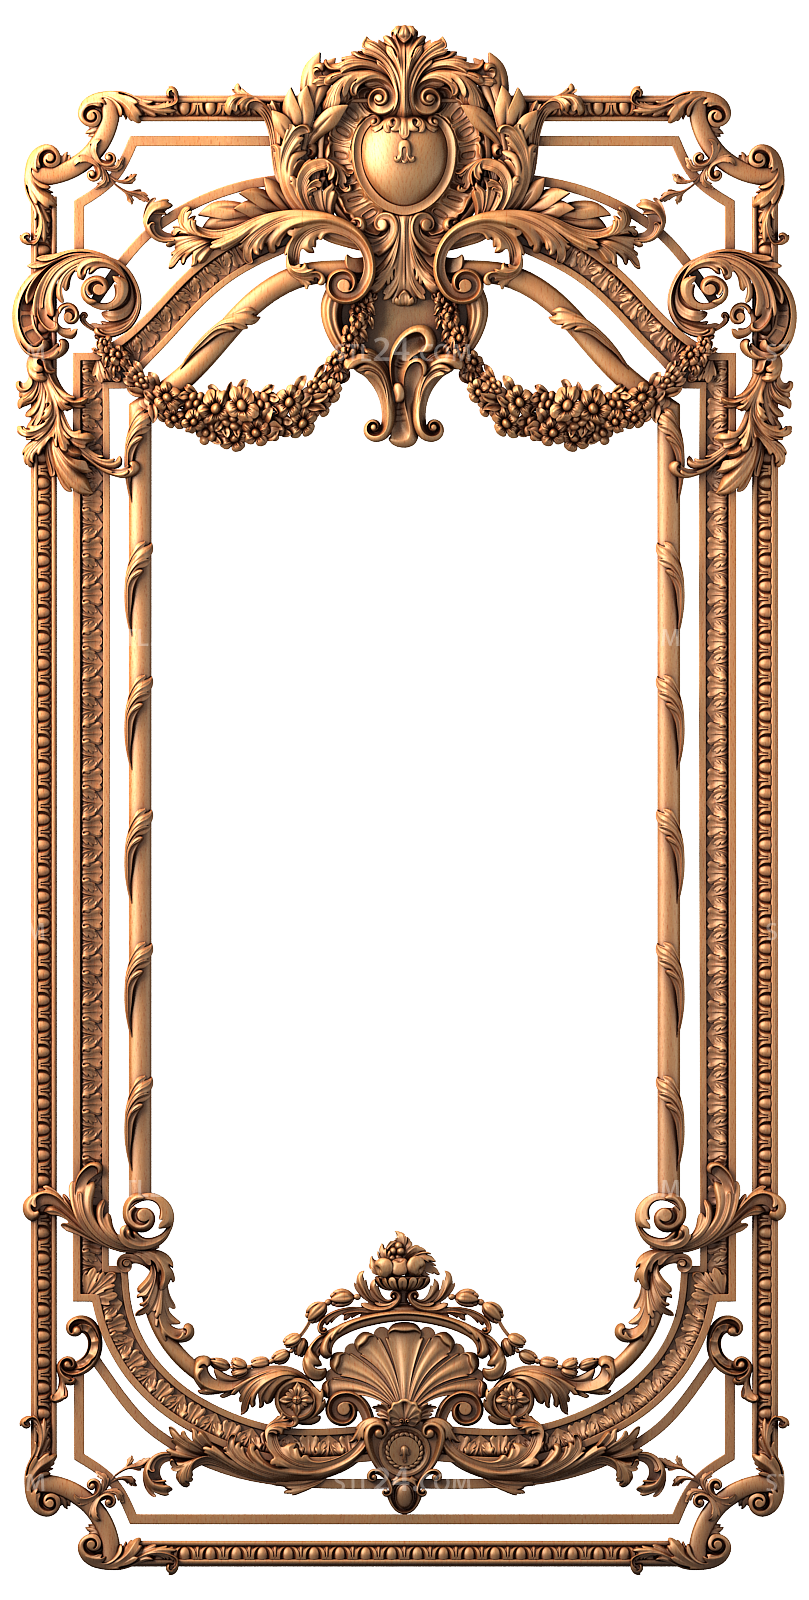 Pin By J D Nasit On Illustrations Figure Flower And Etc Baroque Ornament Ornament Frame Royal Frame